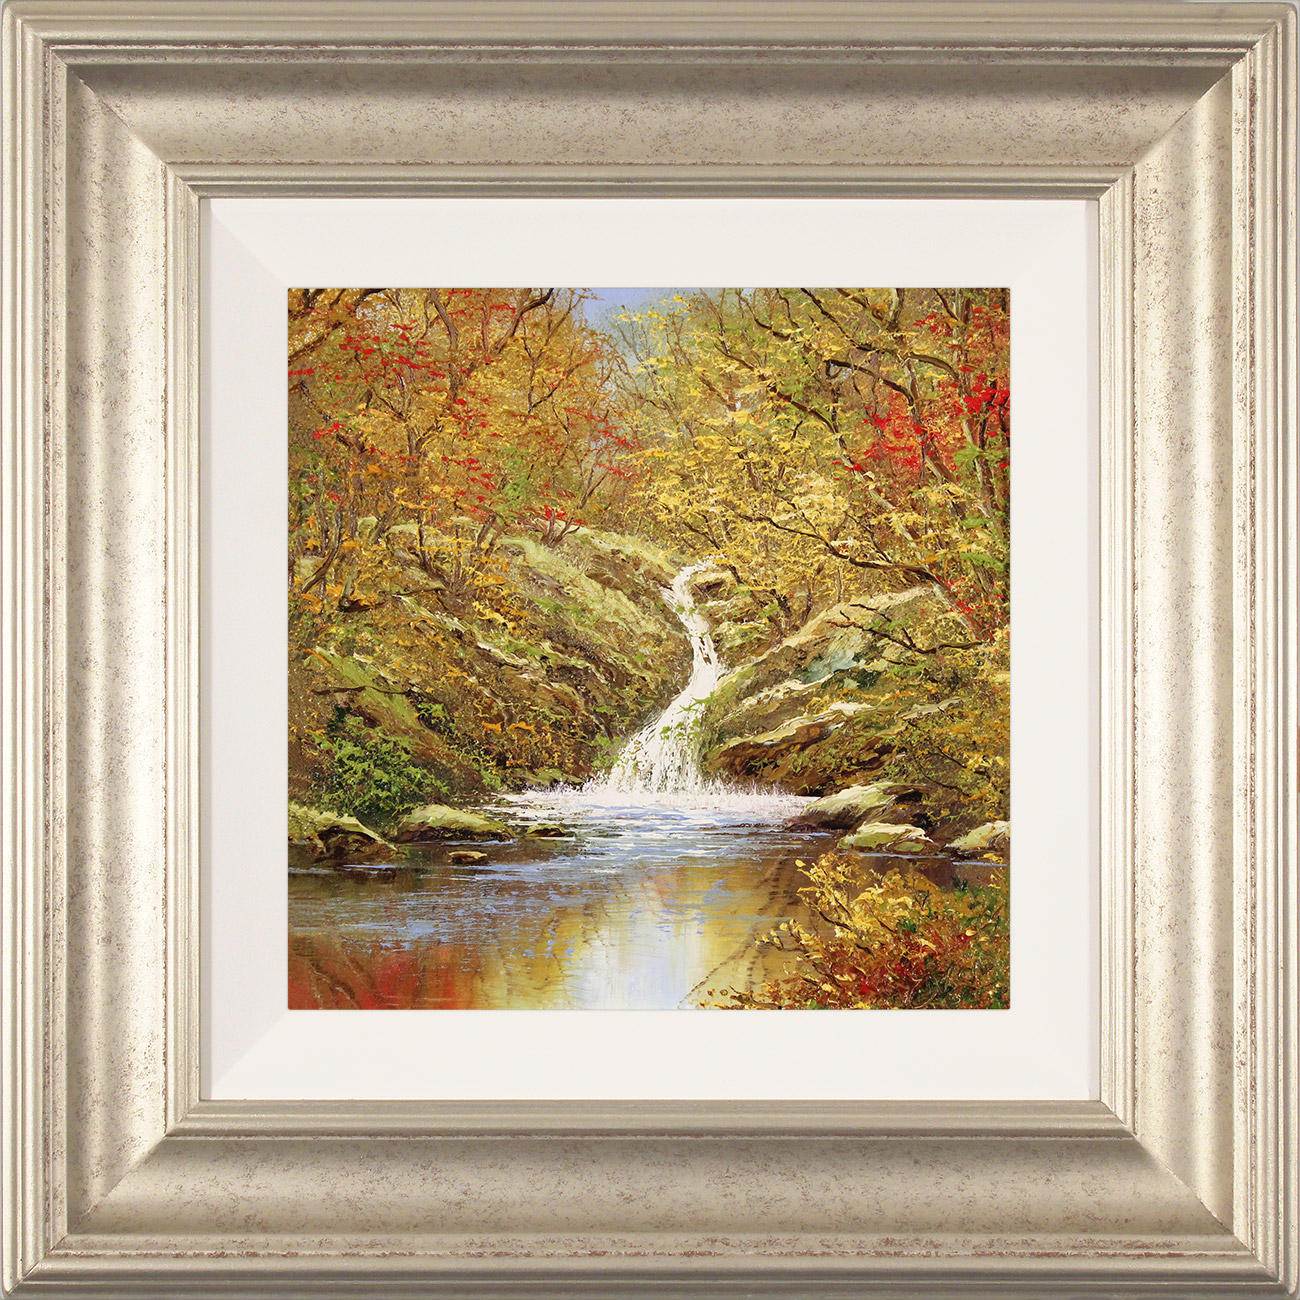 Terry Evans, Original oil painting on canvas, Autumn Falls Click to enlarge